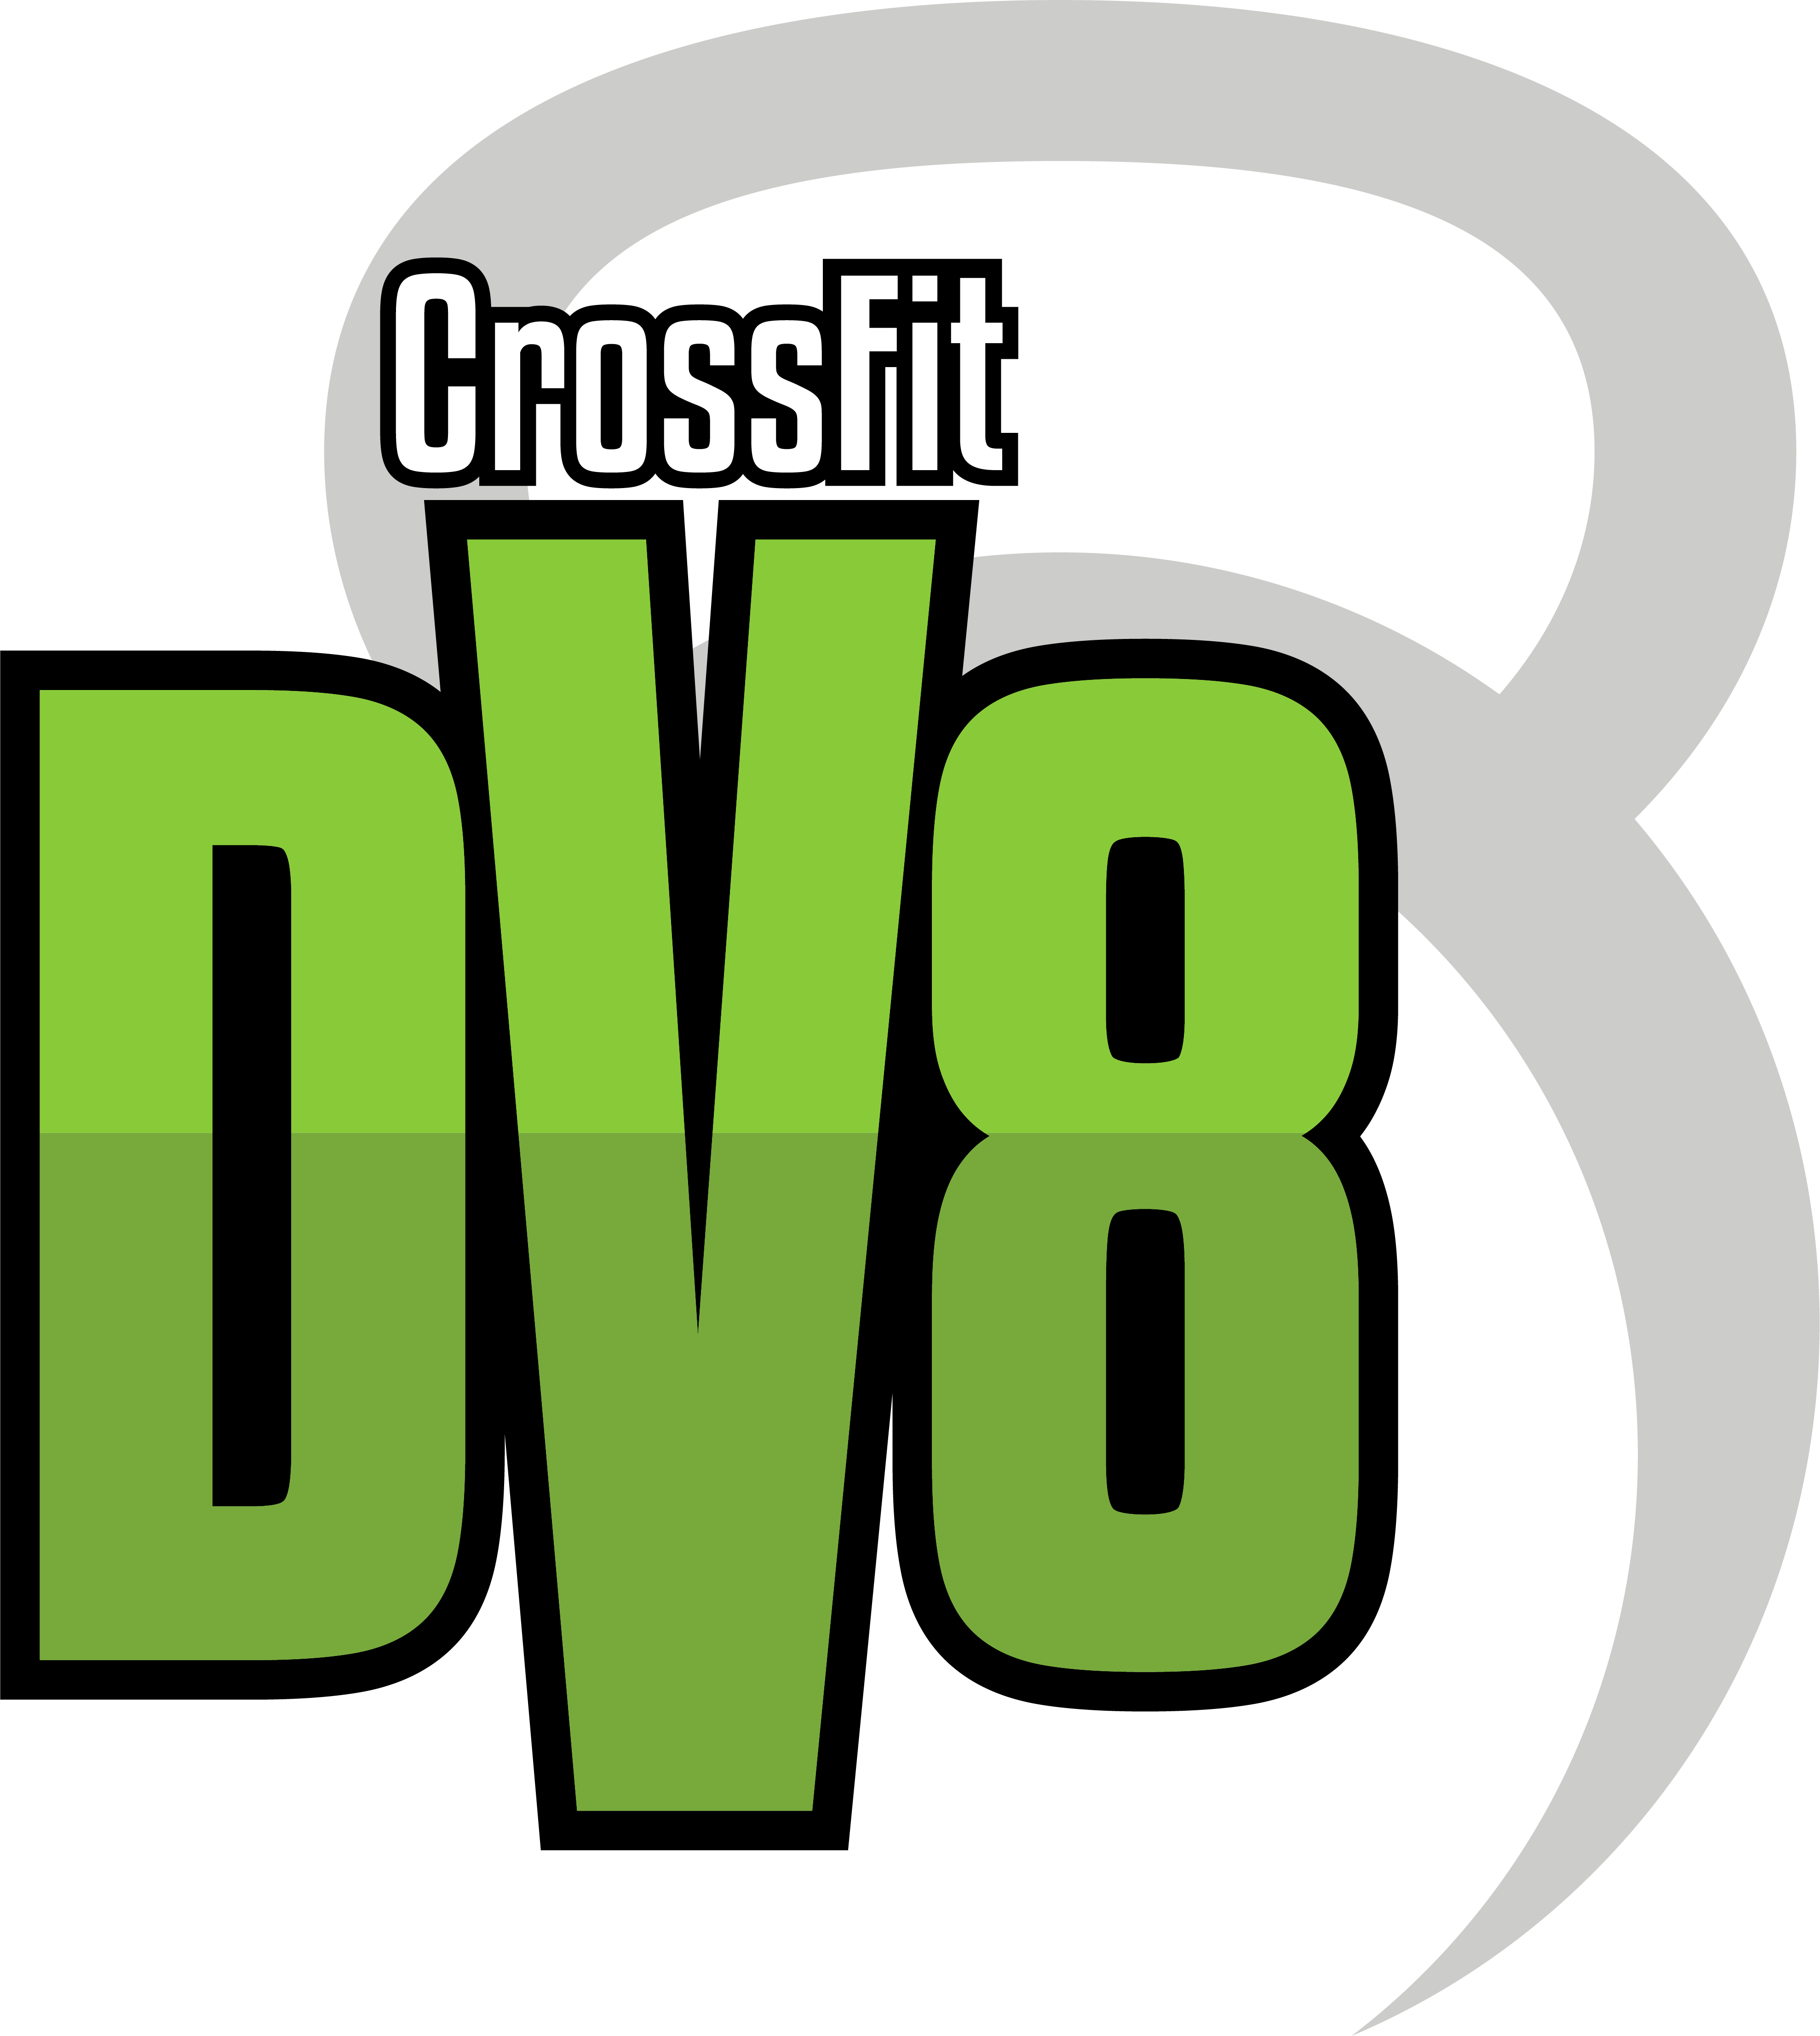 Dv deviate from the. Weight clipart barbell crossfit